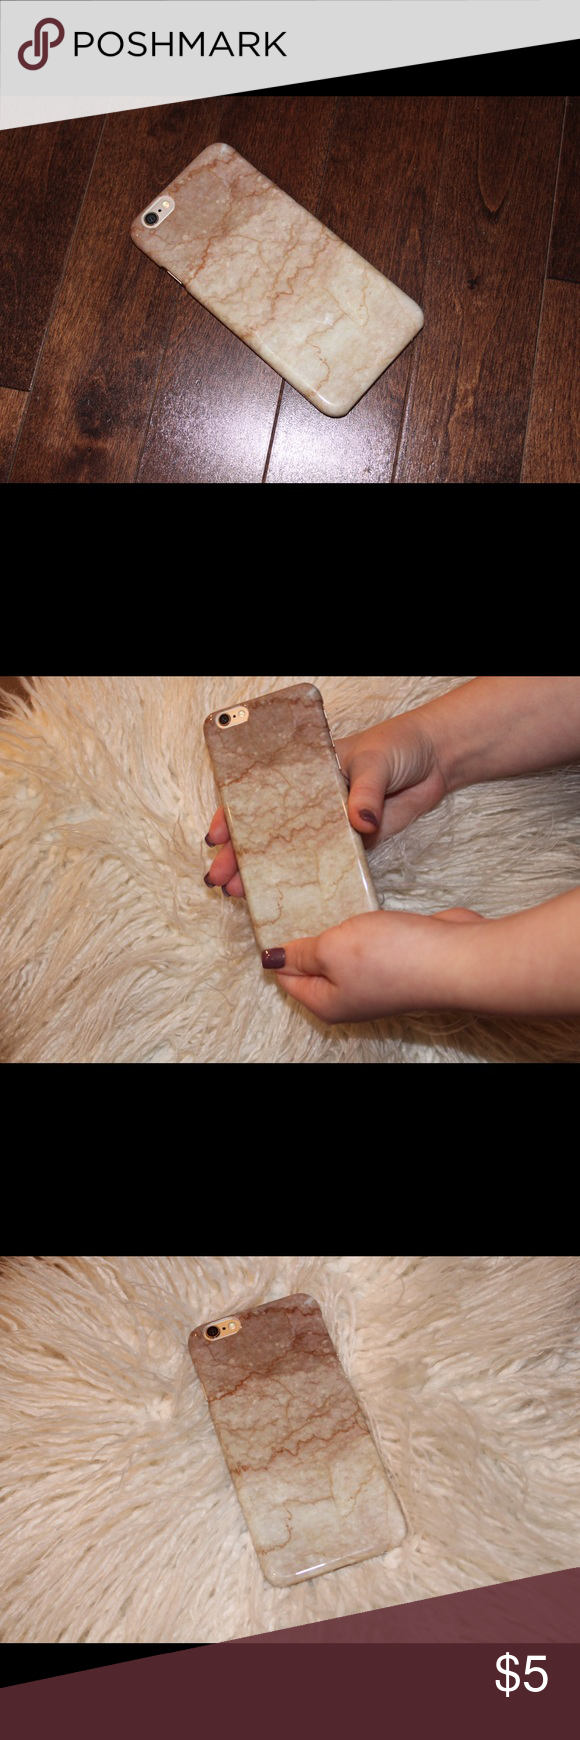 iPhone 6 phone case. Tan and white marble iPhone 6 phone case. Accessories Phone Cases